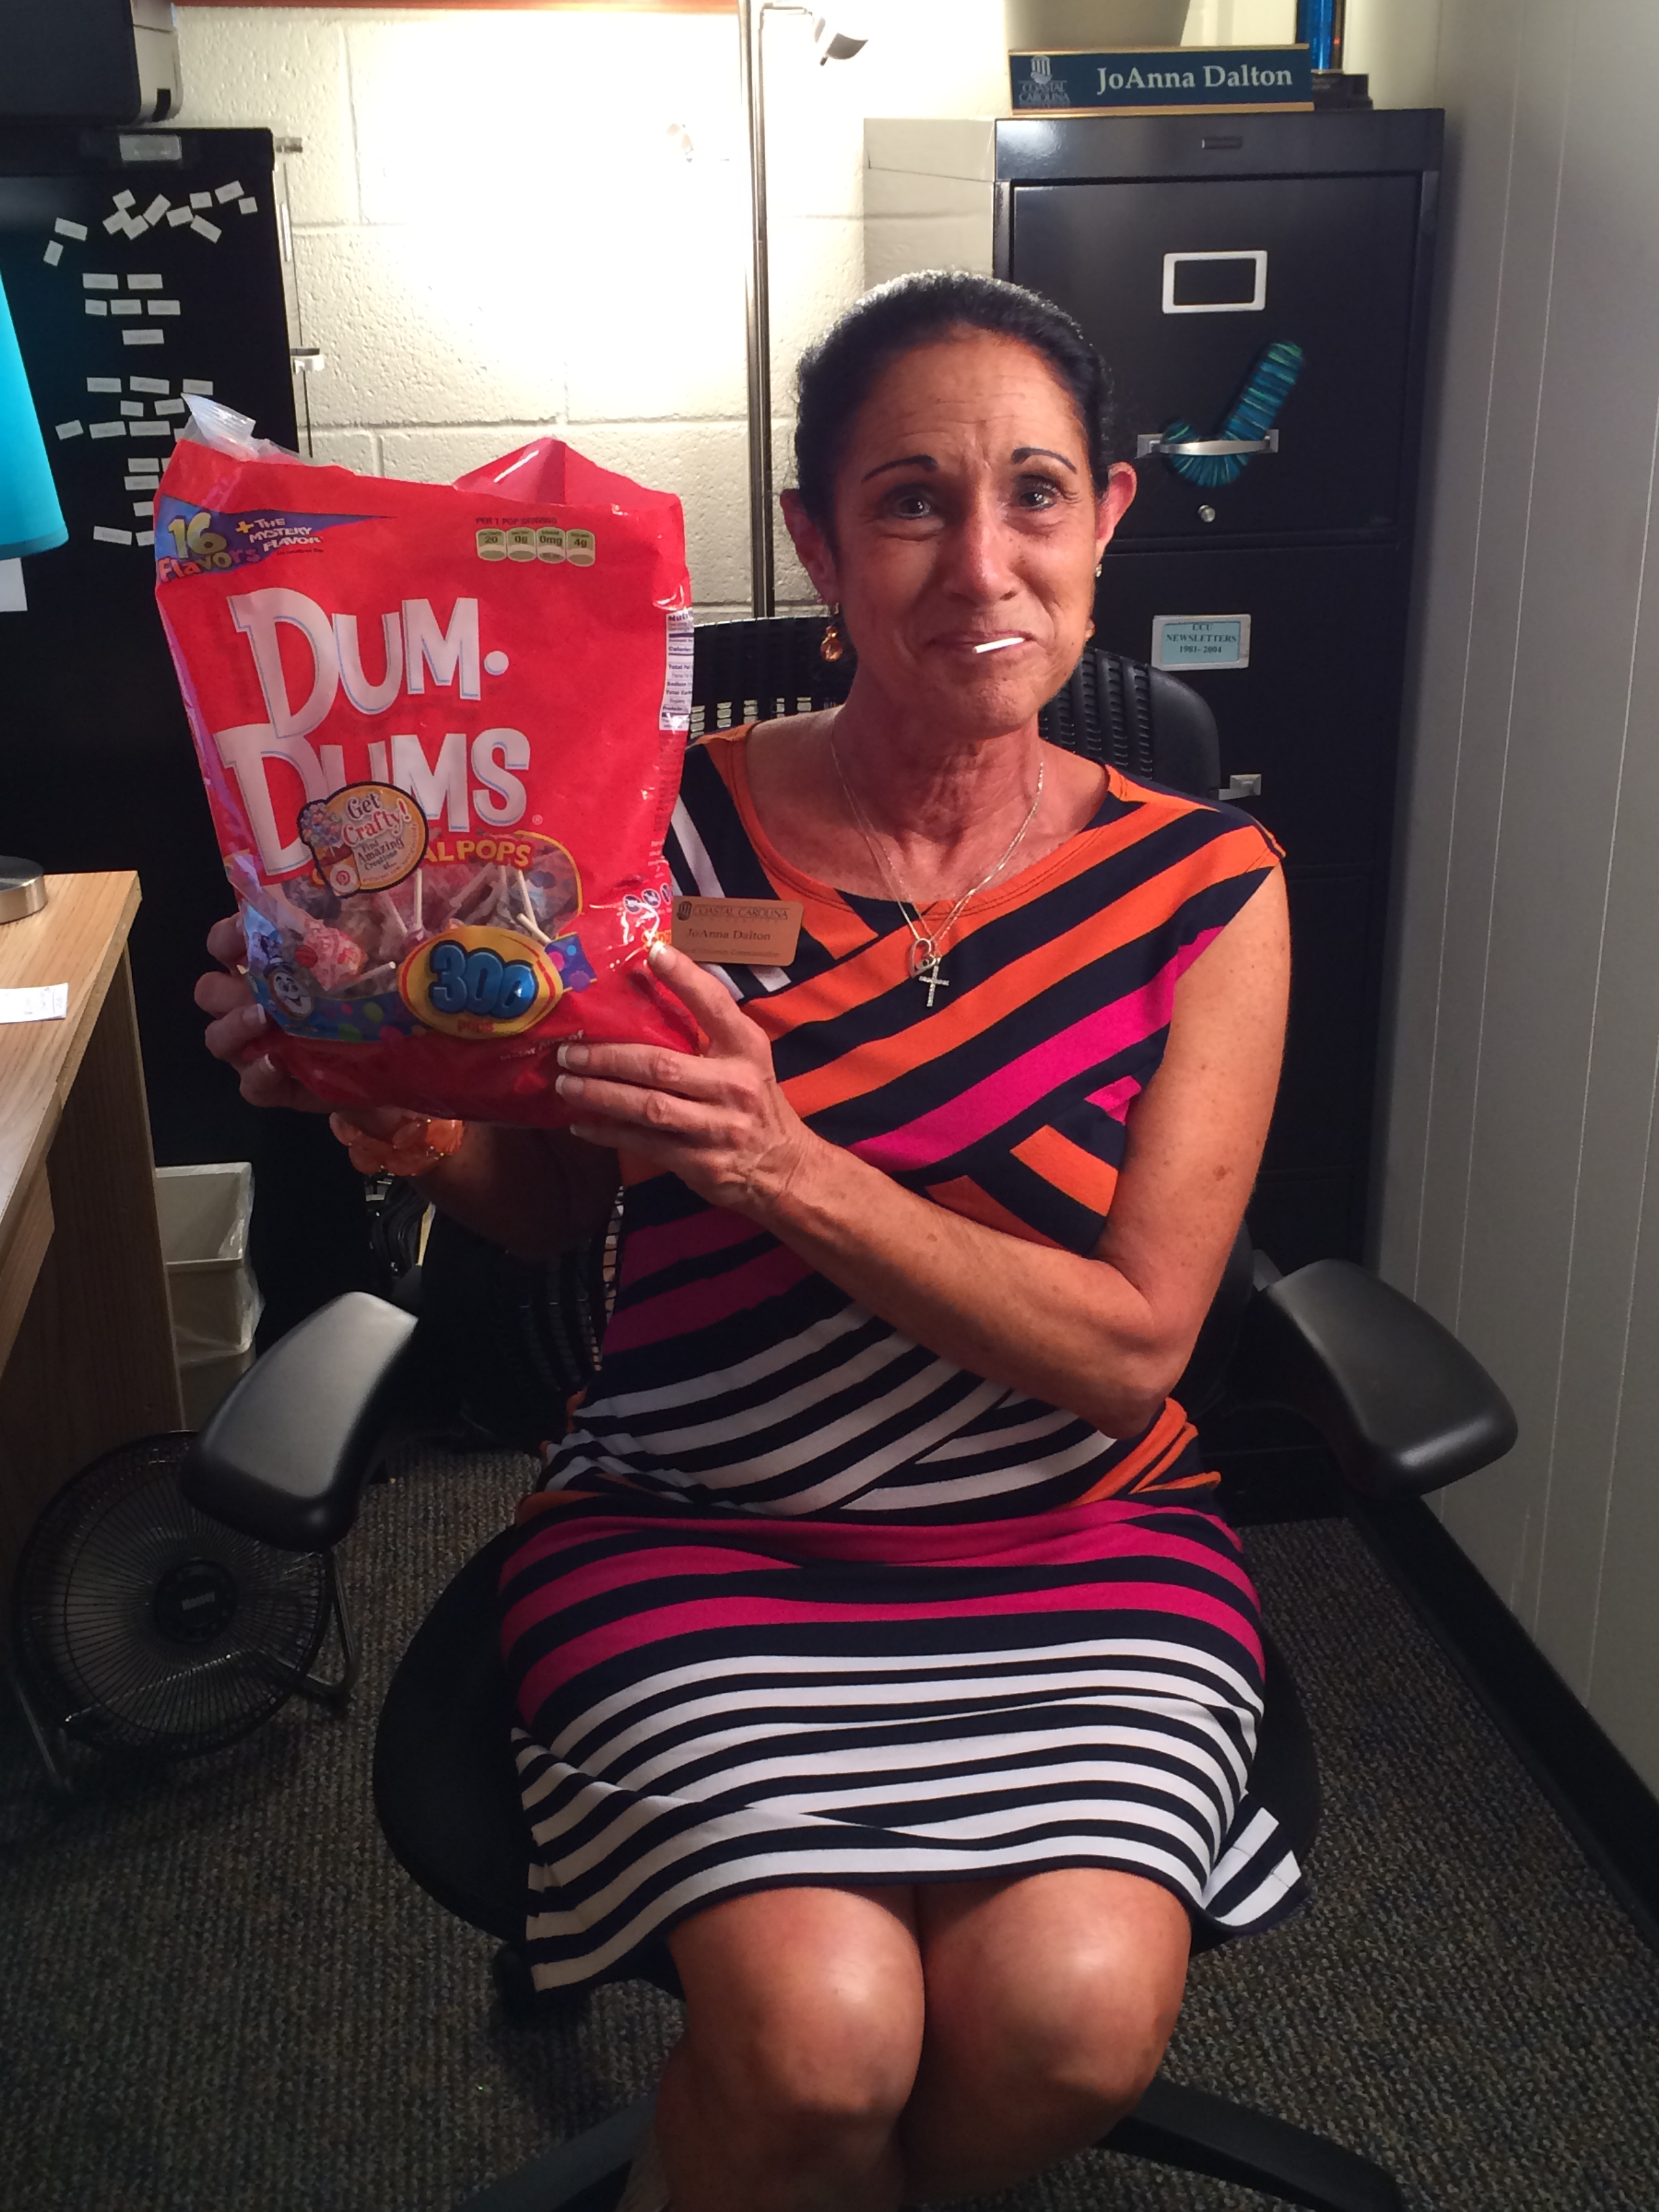 Joanna and her BIG bag of Dum Dums.